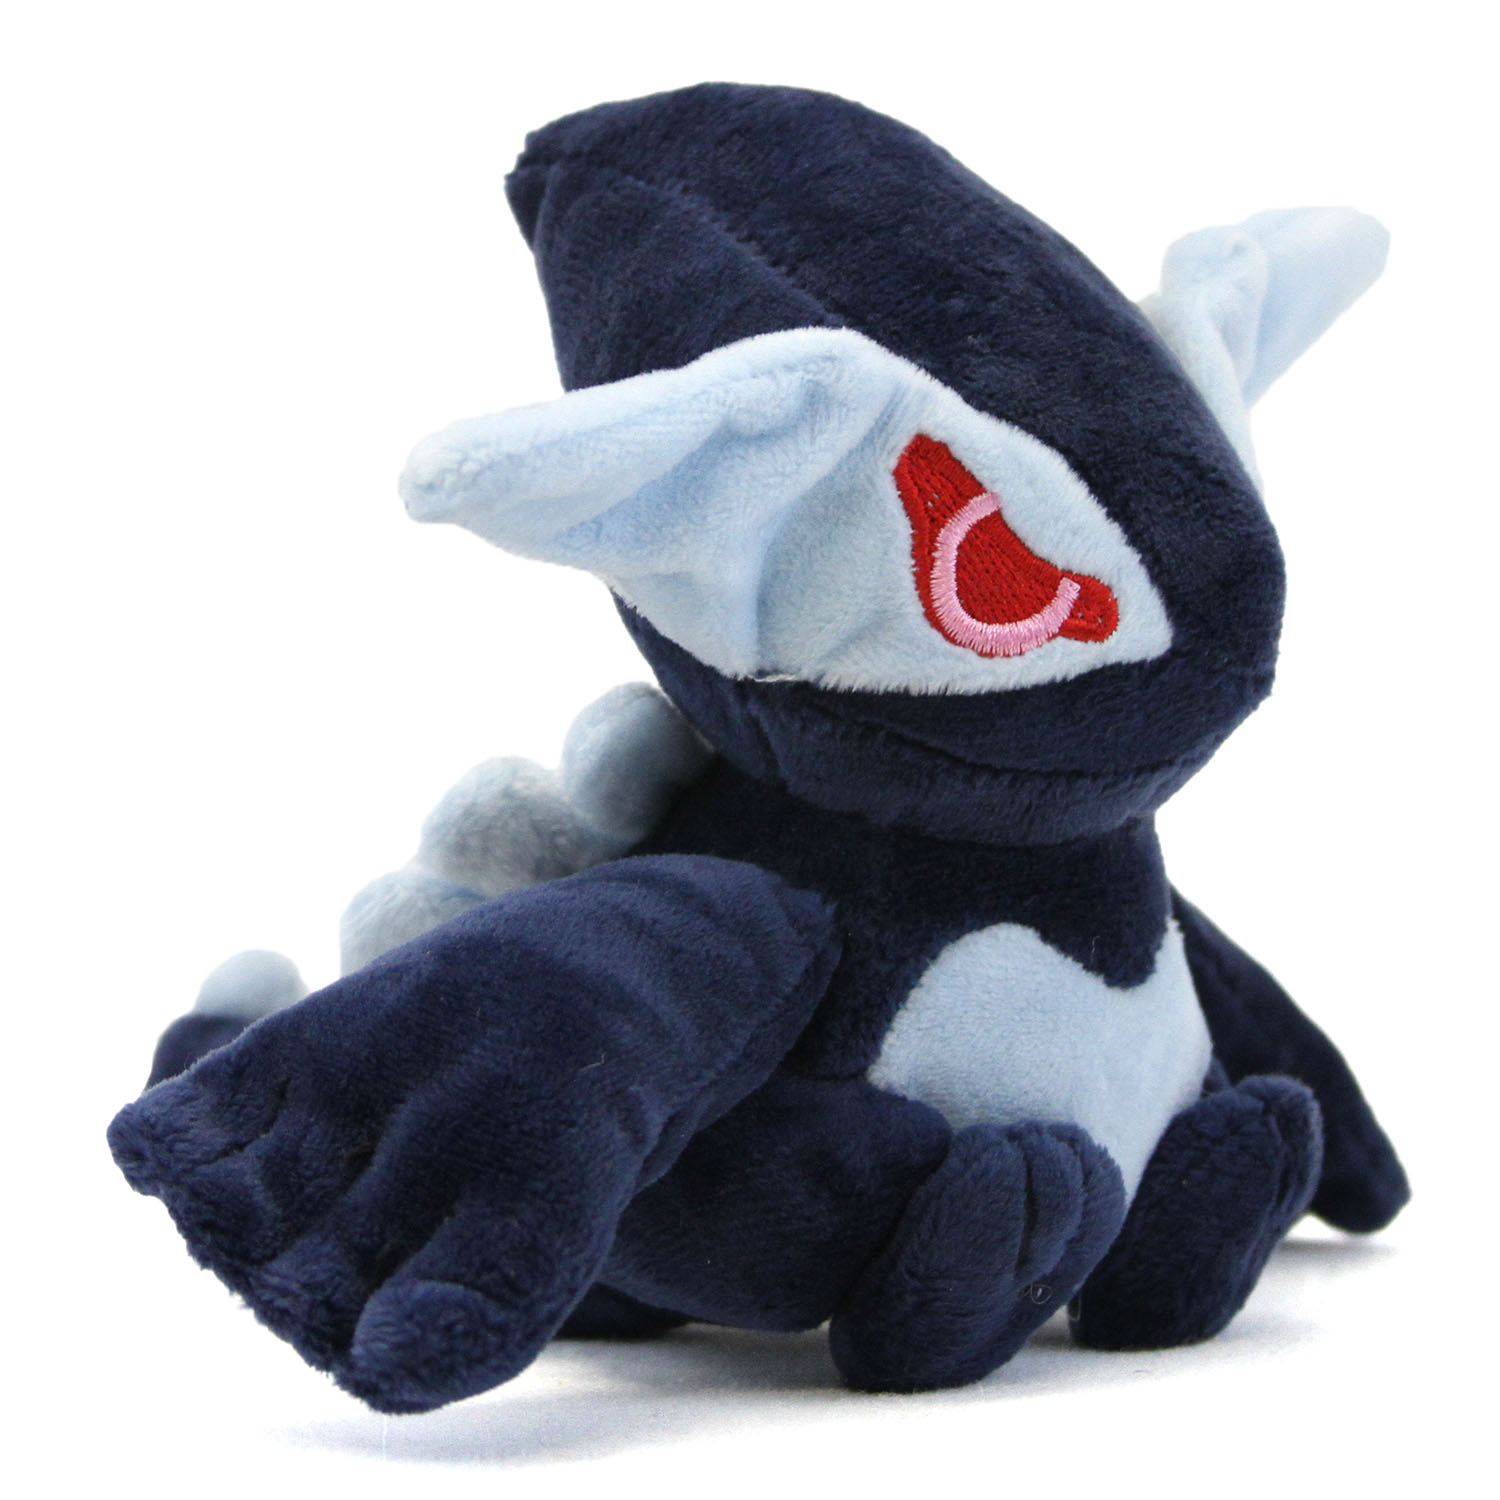 Plush Toys Product : Pokemon quot plush shadow lugia new inch gale of